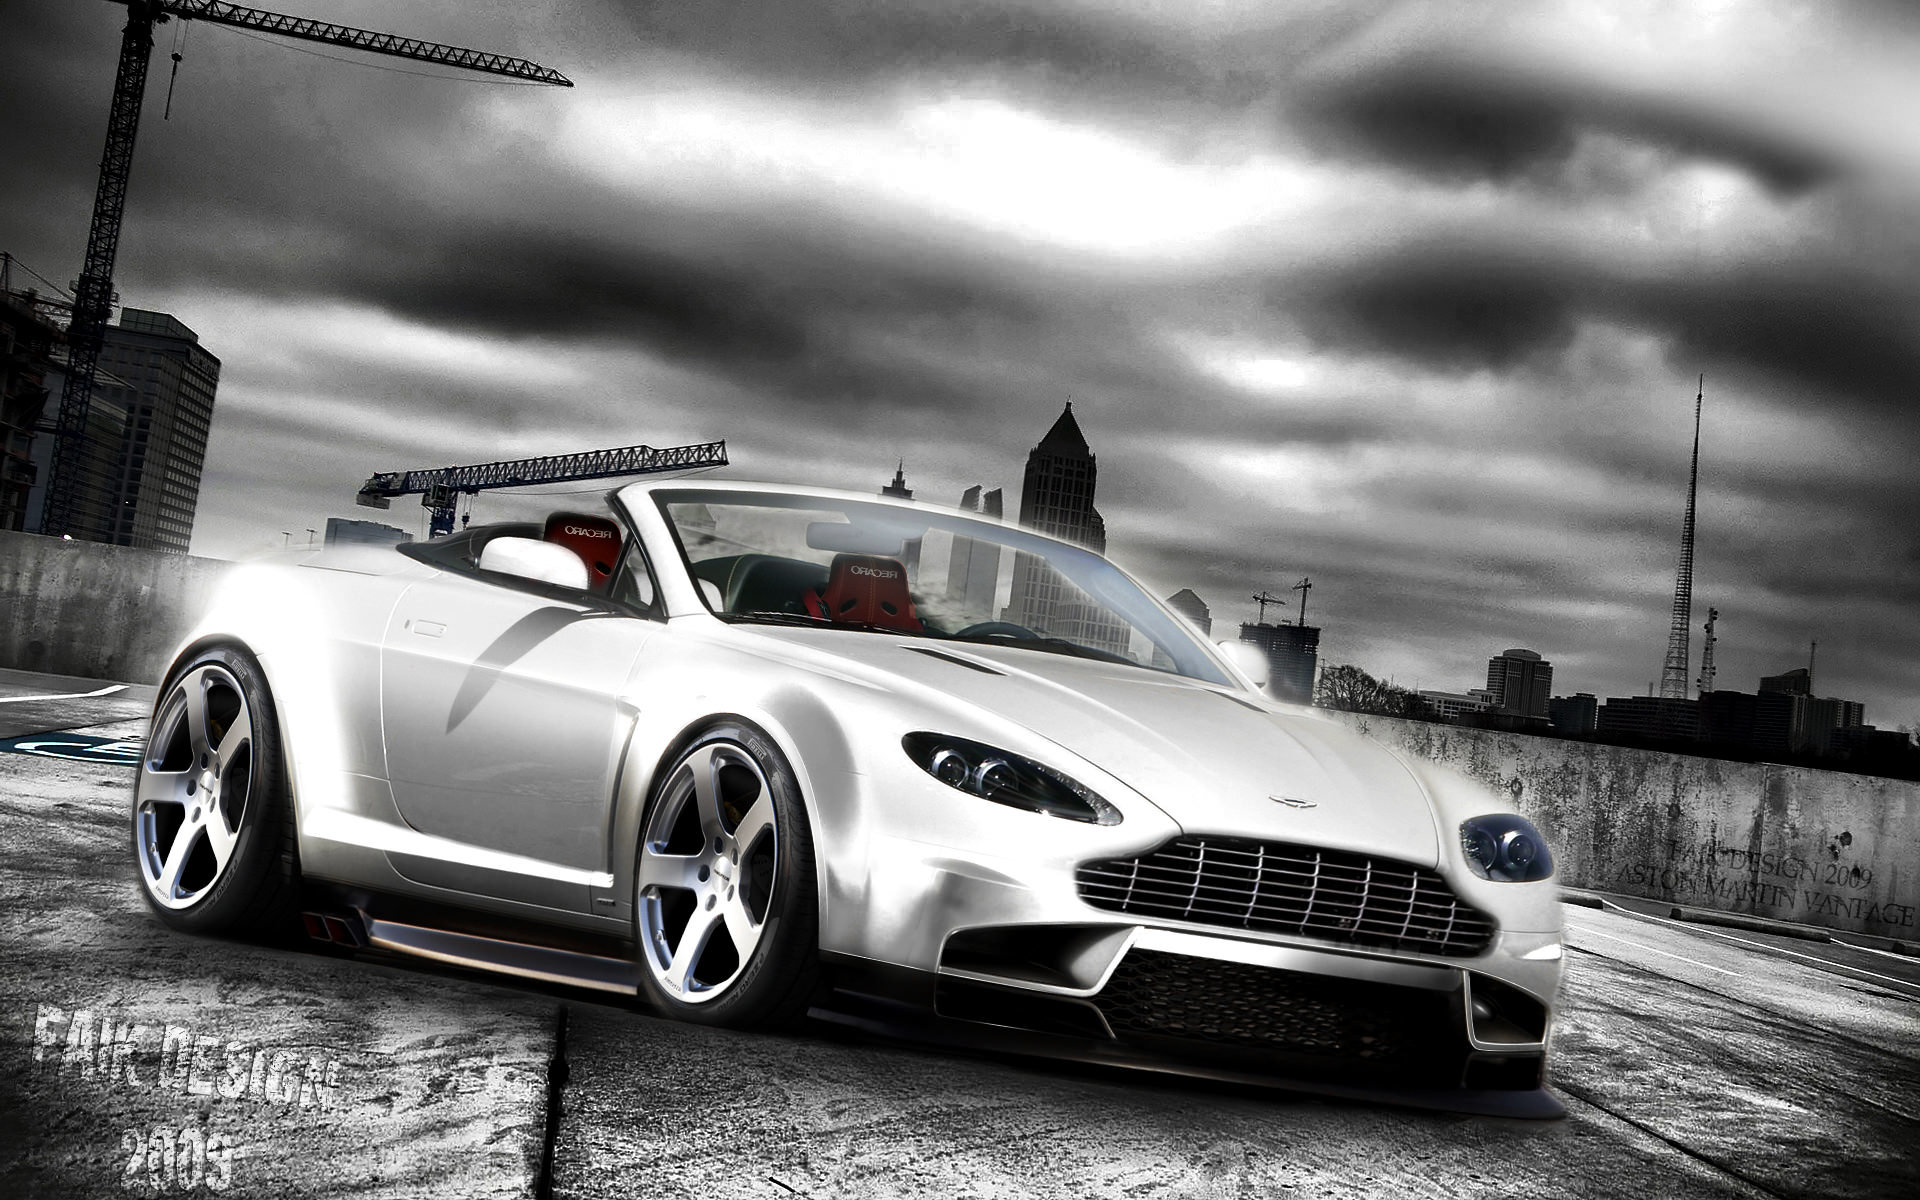 aston martin, wallpaper, wallpapers, car, wallpapaer